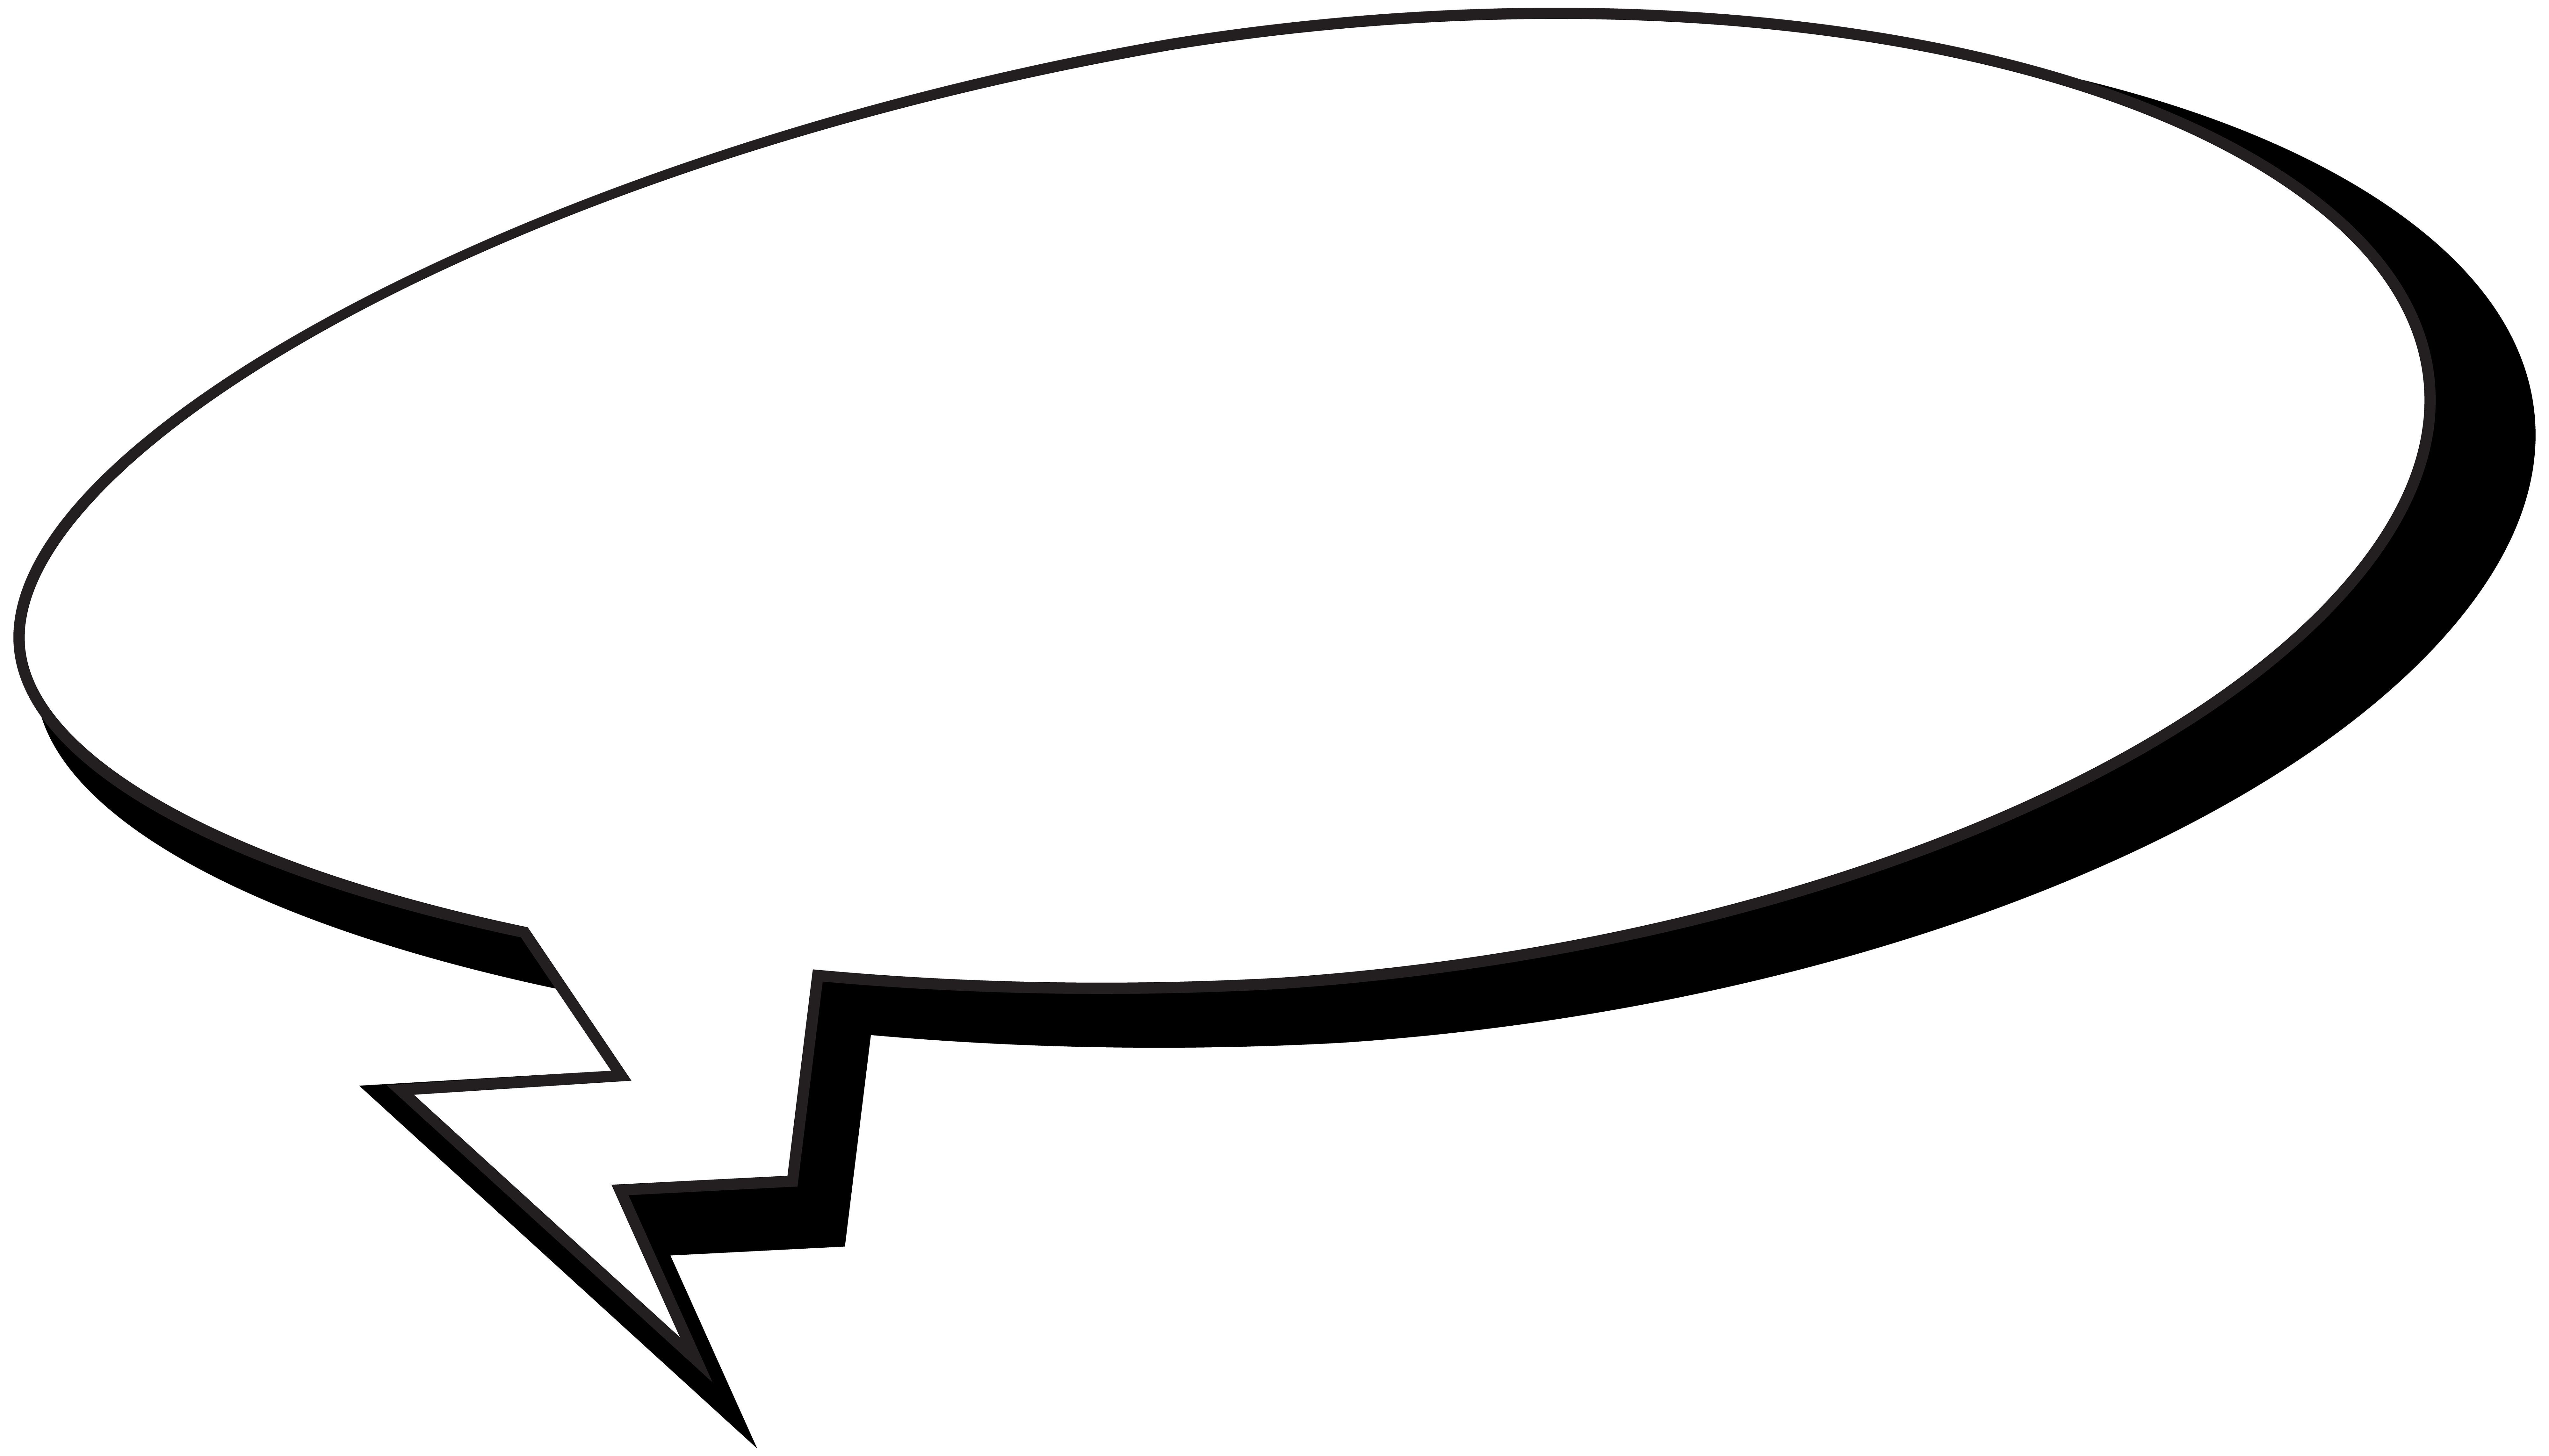 Comic speech bubble png. Comics clip art image